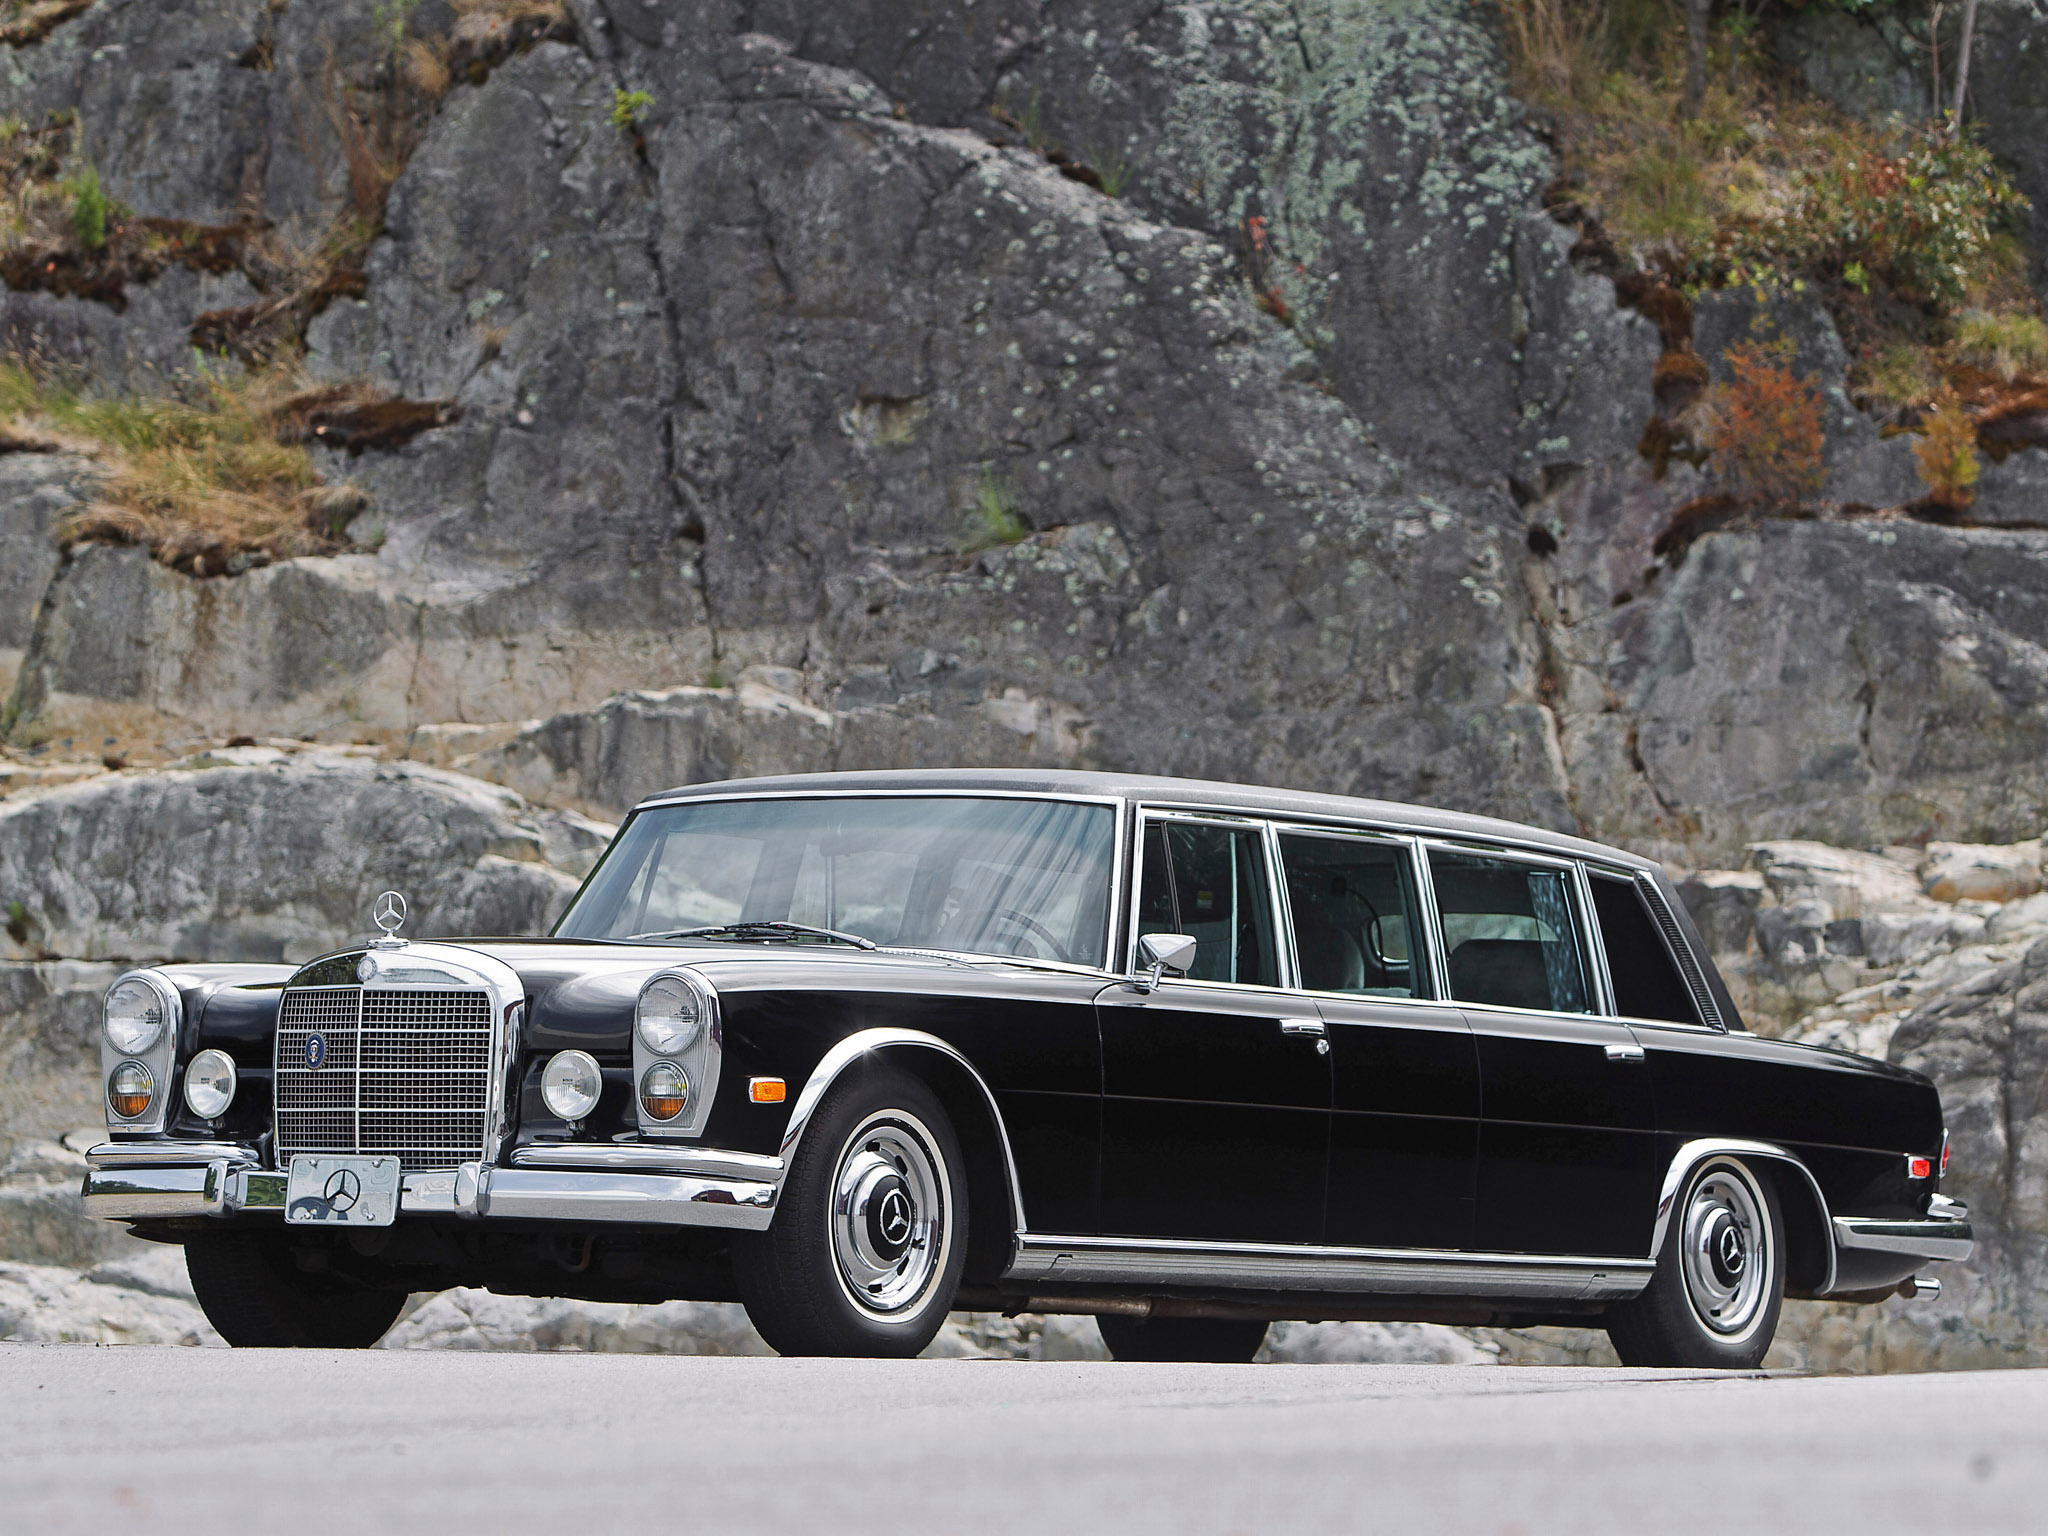 mercedes 600 pullman w100 1964 81 mercedes 600 pullman w100 1964 81 photo 18 car in pictures. Black Bedroom Furniture Sets. Home Design Ideas